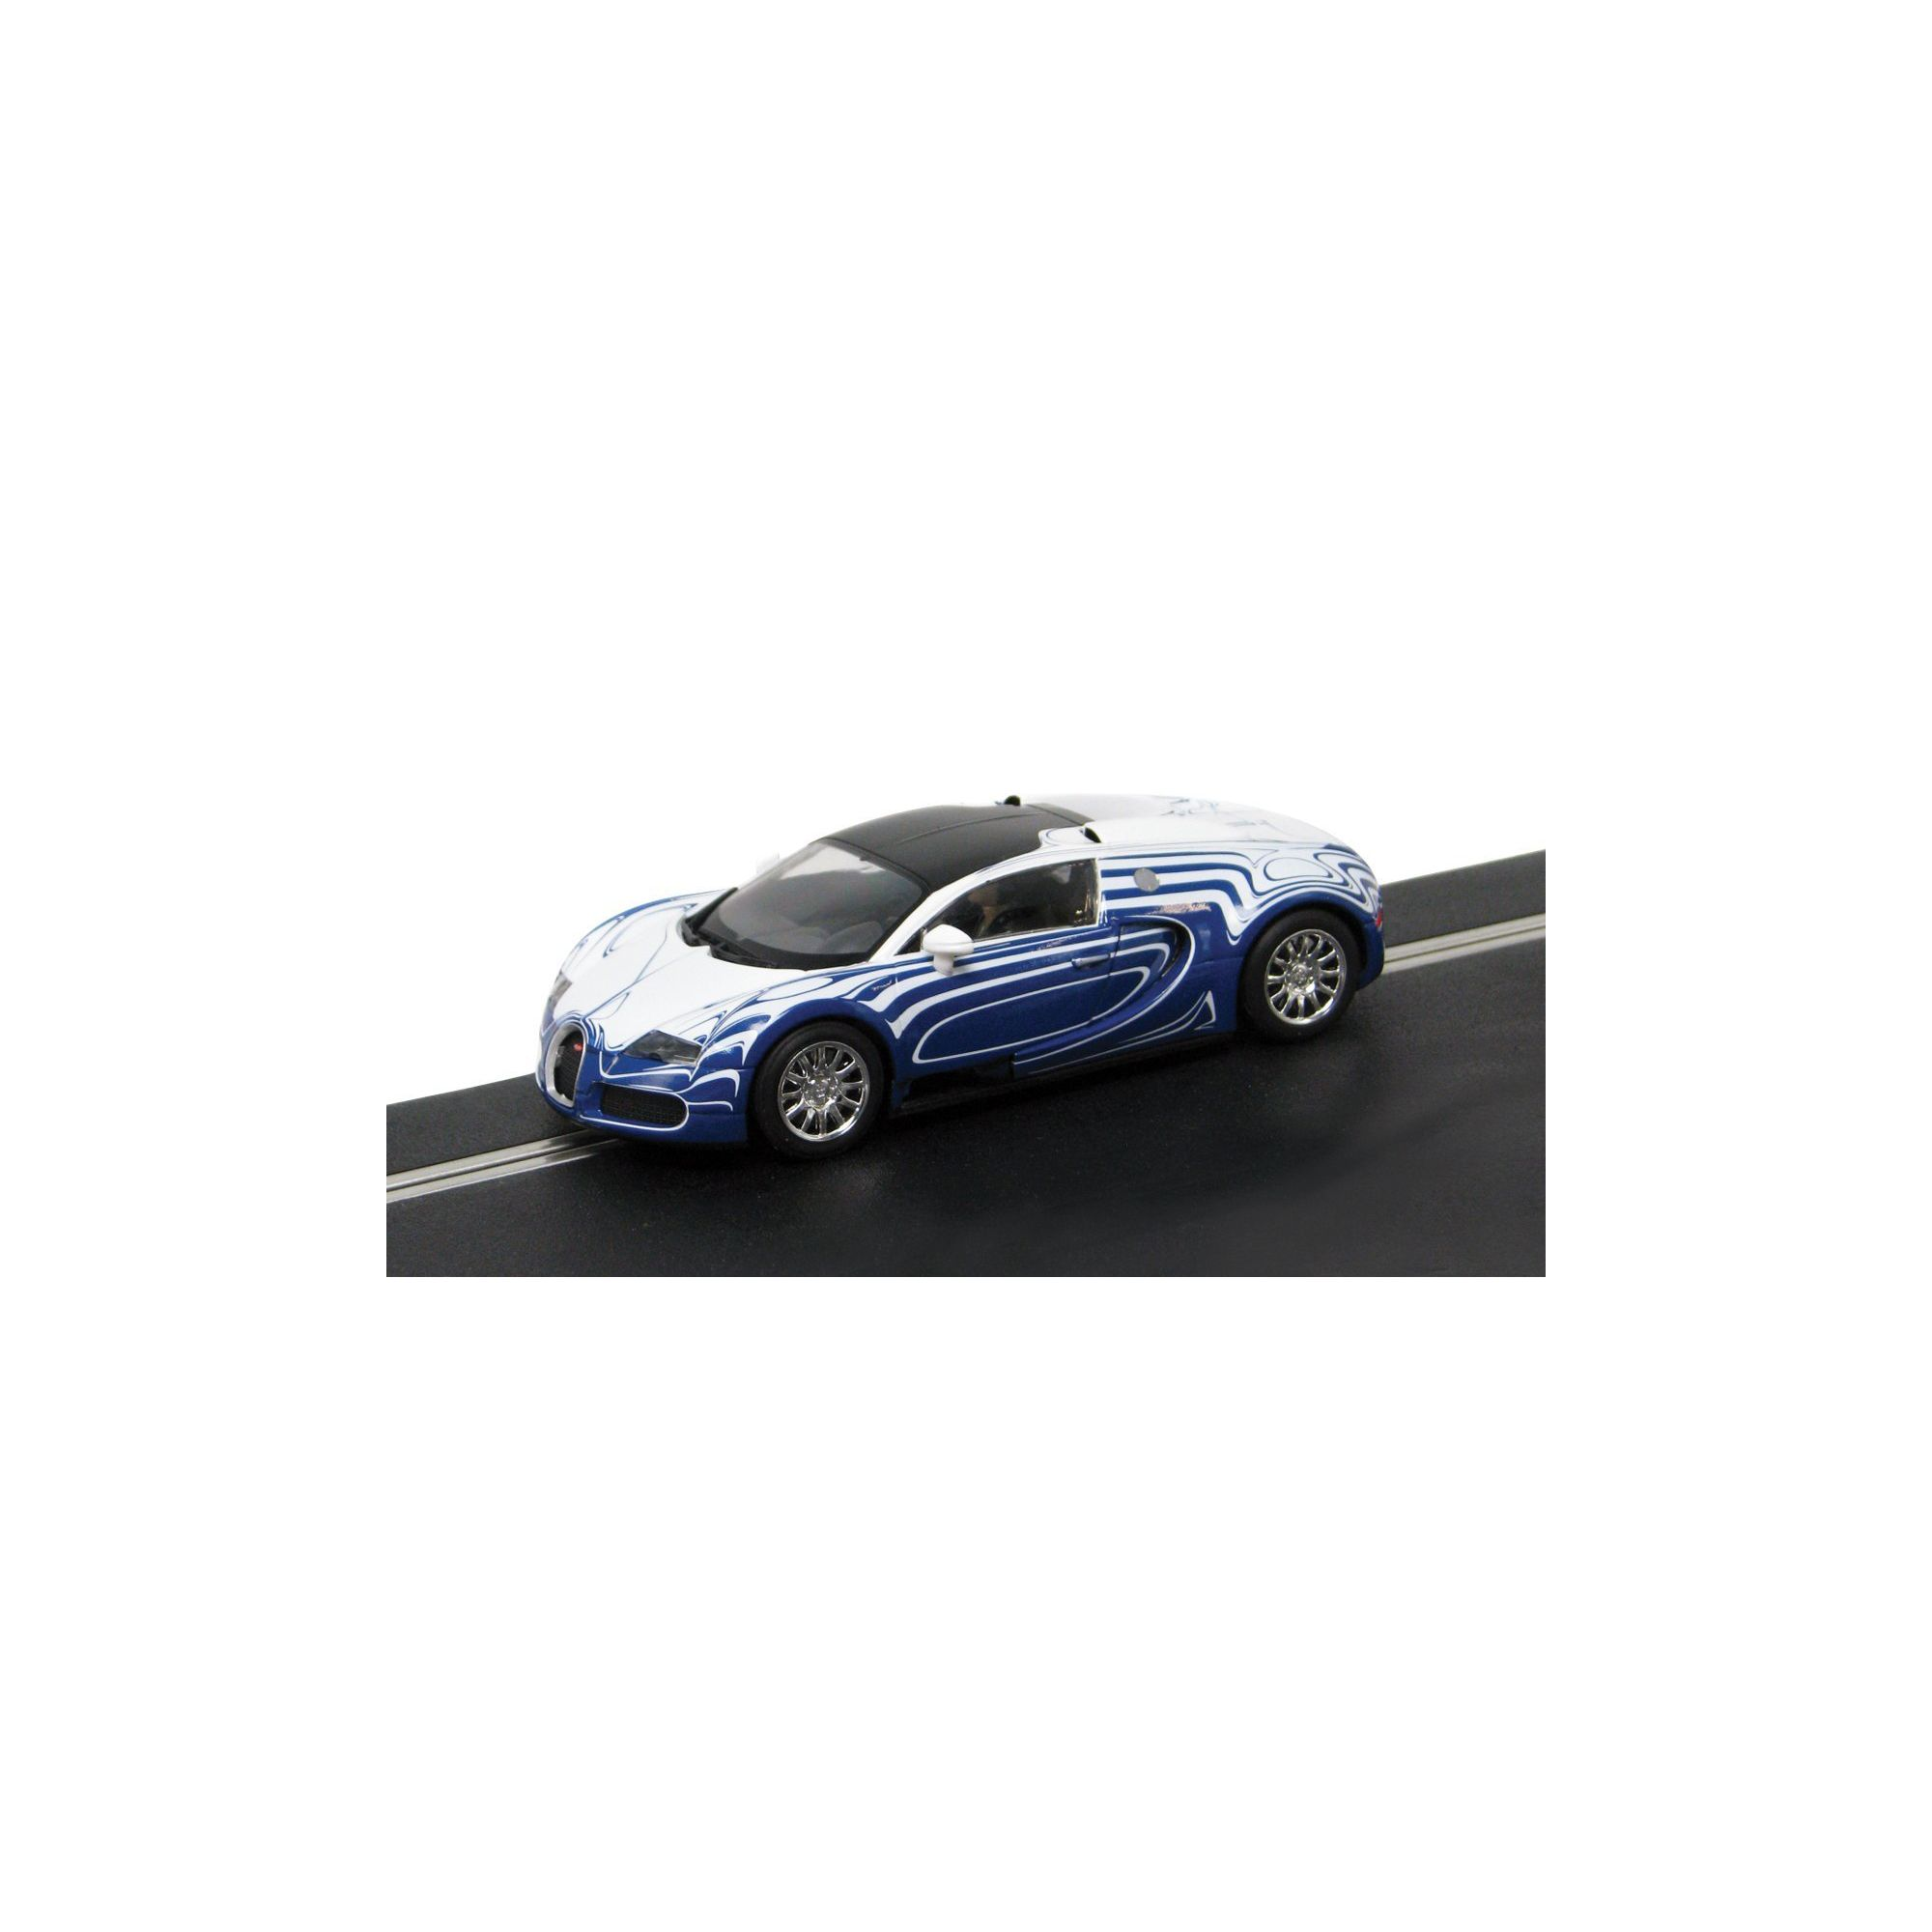 bugatti veyron l 39 or blanc scalextric c3394 toys compare and save. Black Bedroom Furniture Sets. Home Design Ideas